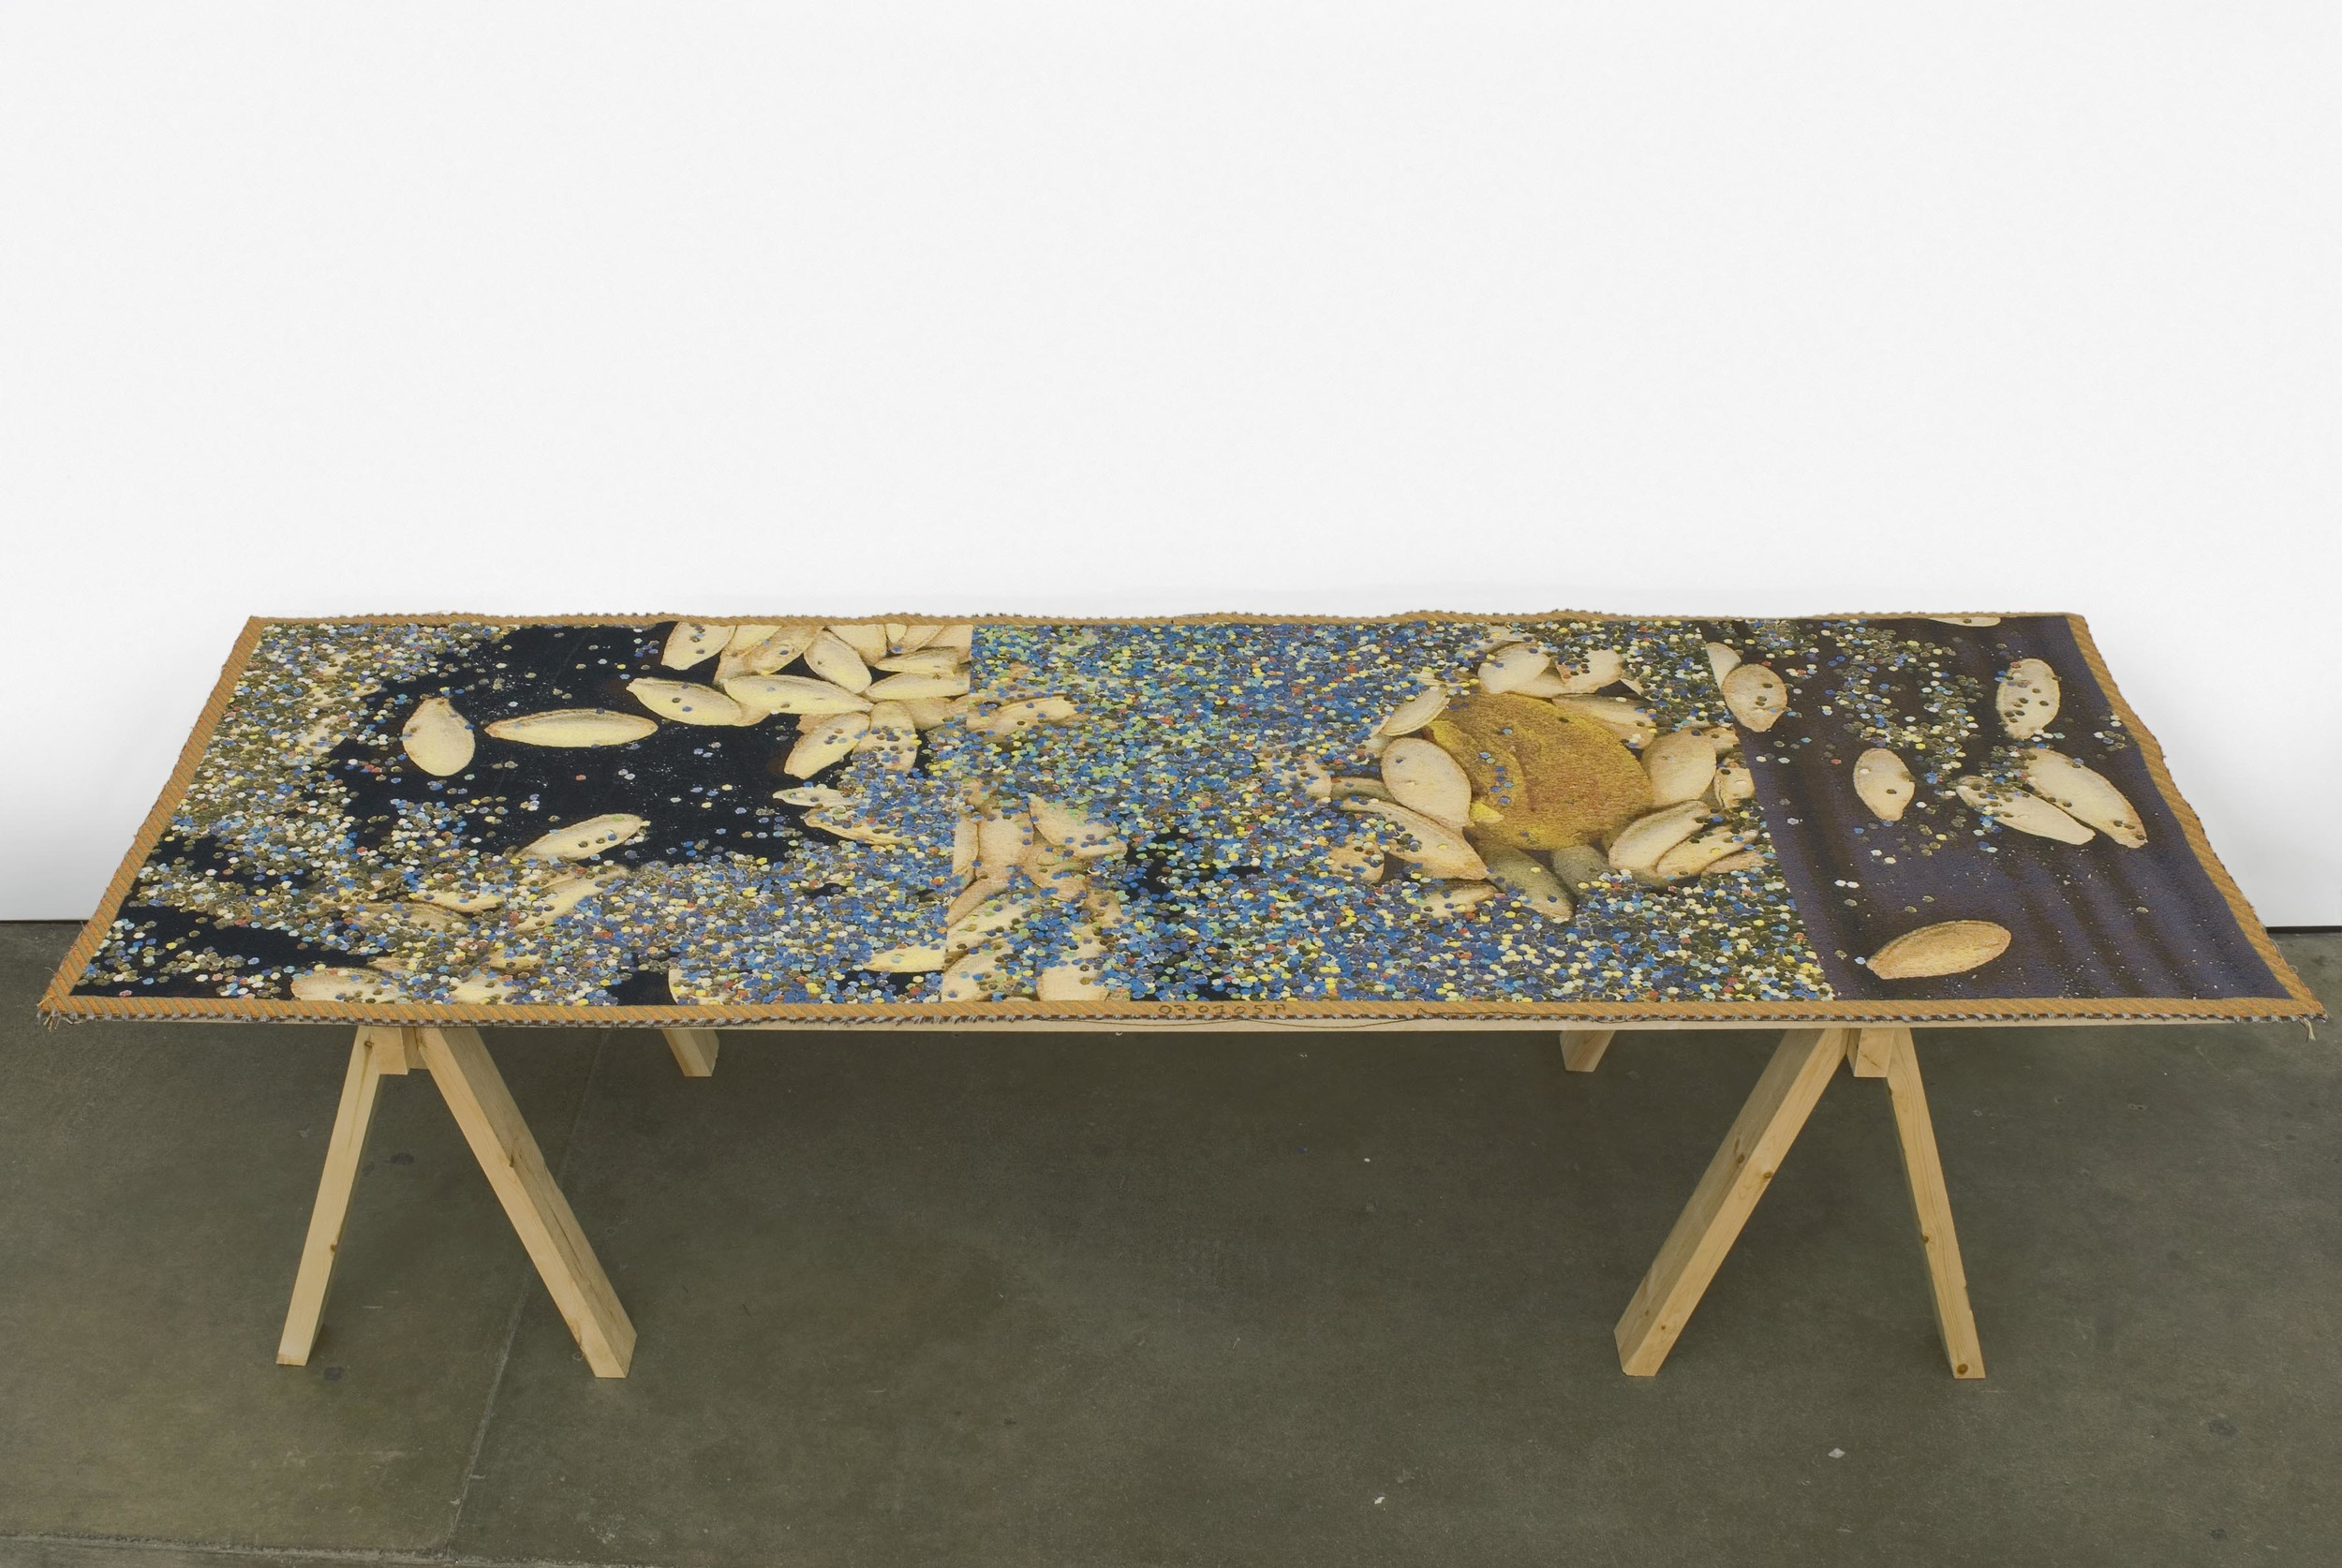 Pae White Table-scraps 1 2007 Cotton and Trevira 293.37 x 102.87 cm